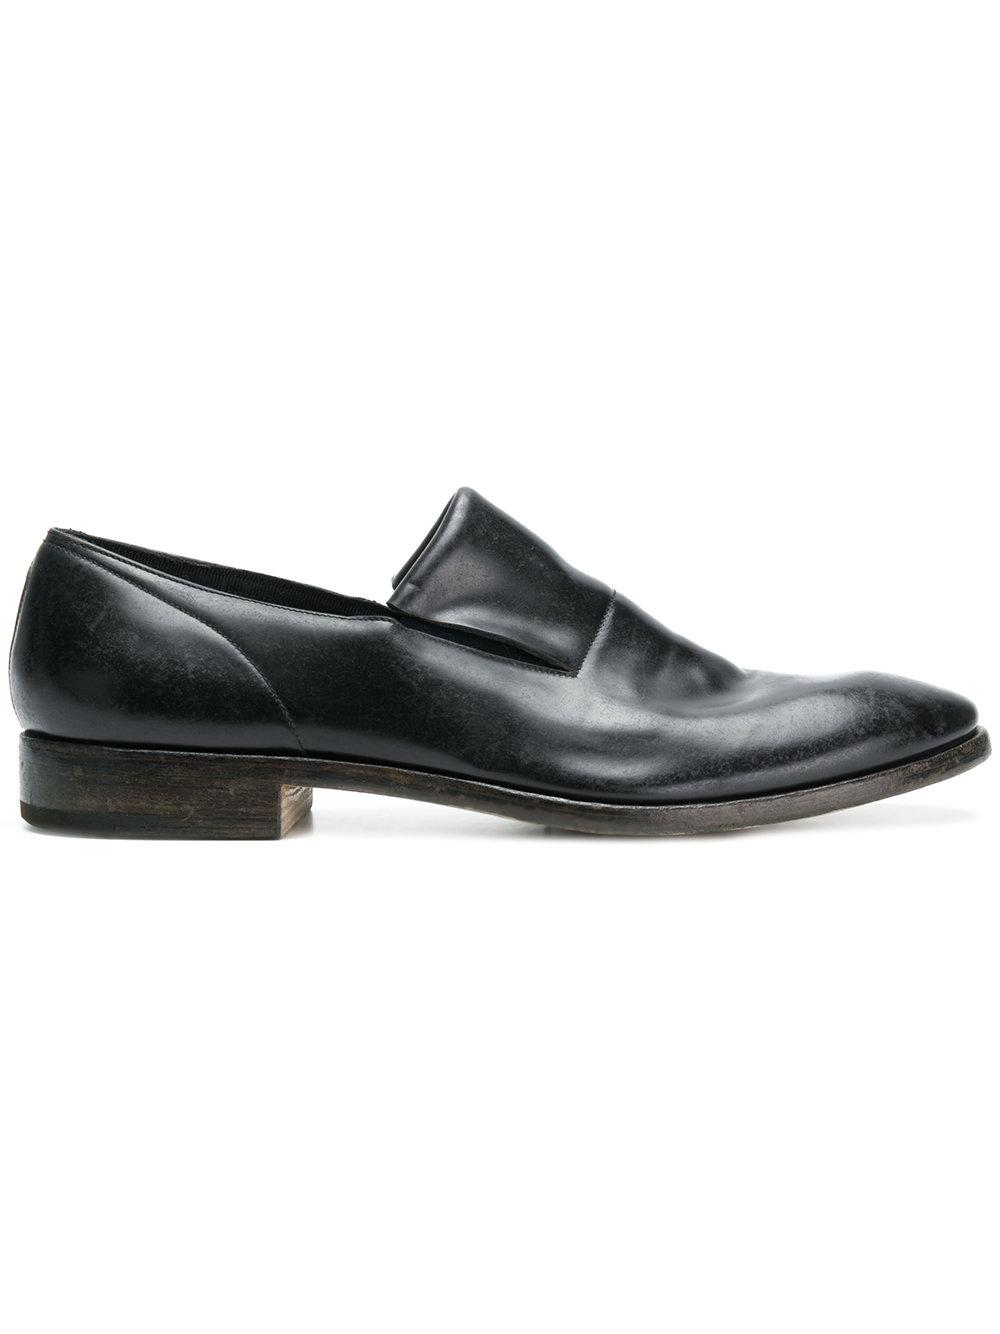 Premiata Varnished Slip-on Loafers - Black